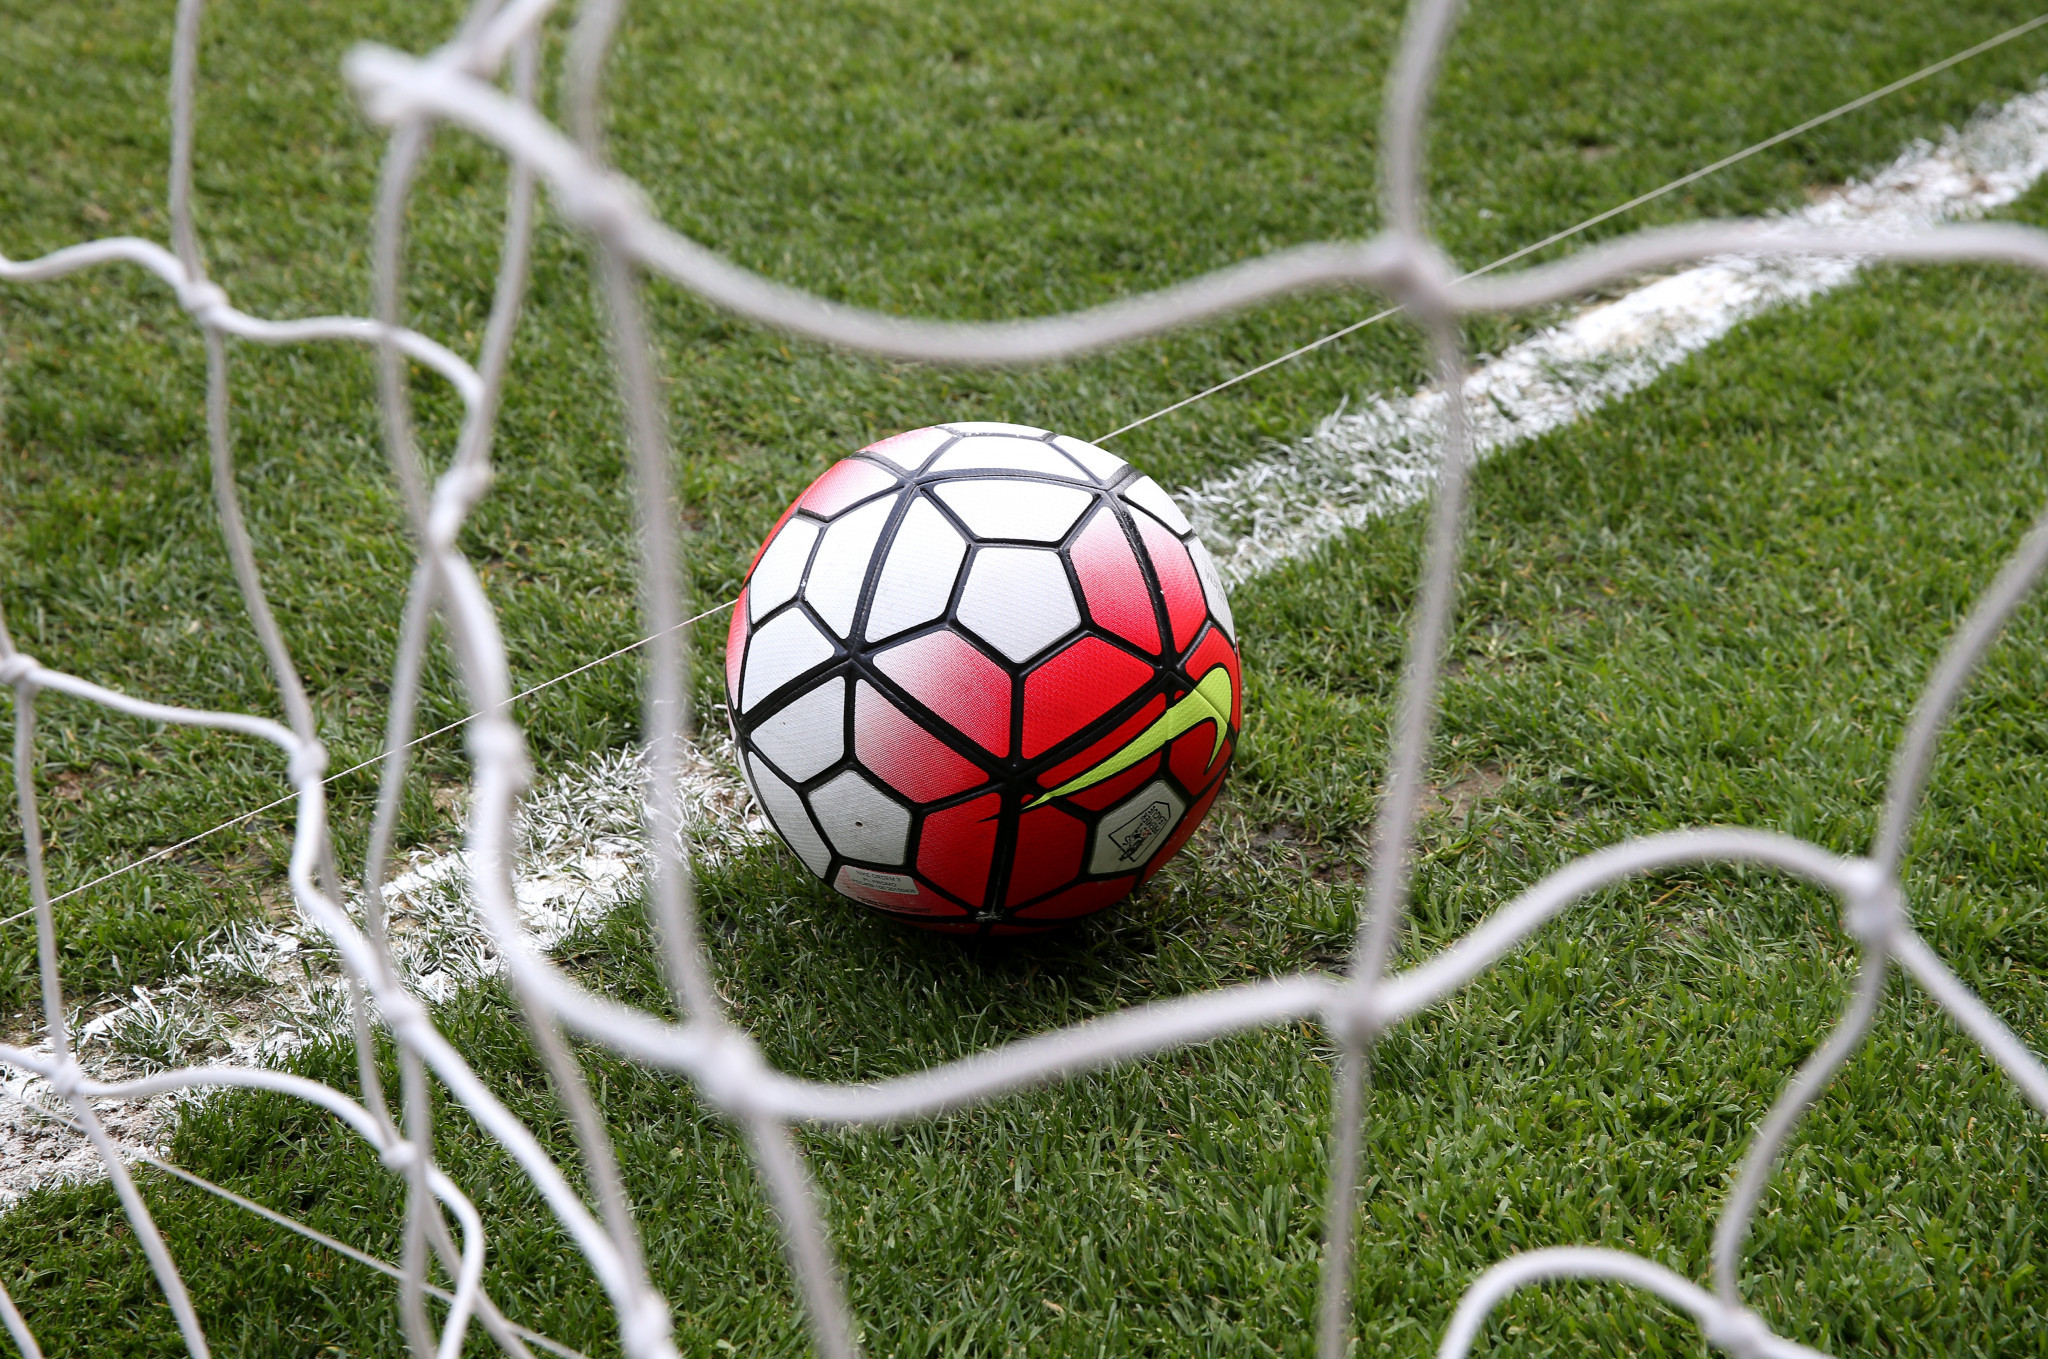 No decision yet on goal-line technology for Tokyo 2020 football tournament